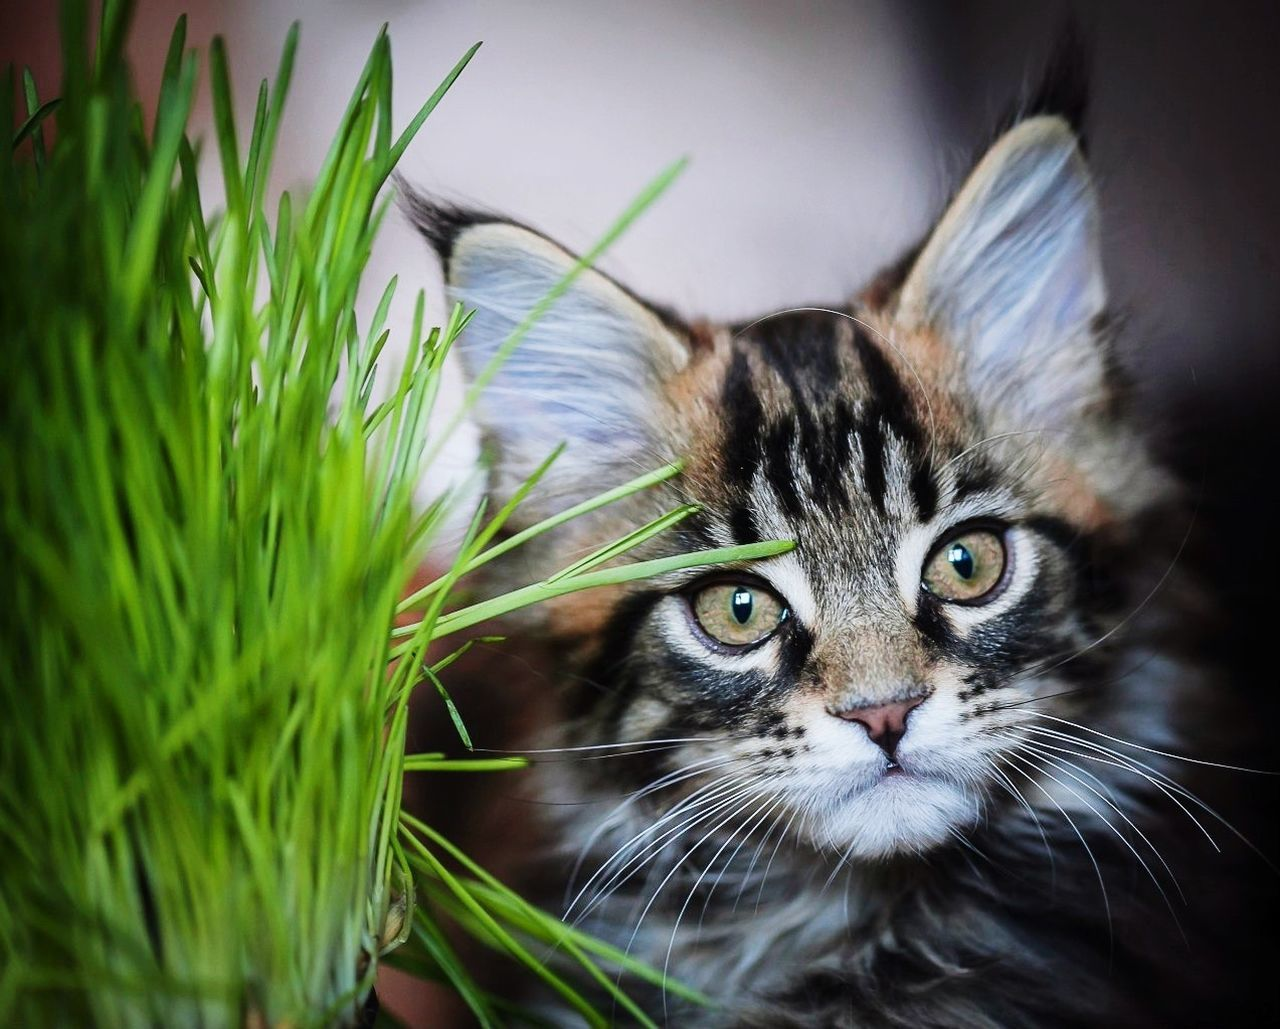 One Animal Domestic Cat Cat Looking At Camera Animal Head  Feline Animal Eye Pets Zoology Green Color Kitten Tabby котёнок мейнкун Mainecoon мейнкун Animal Themes Animal Head  котенок в траве Kitty